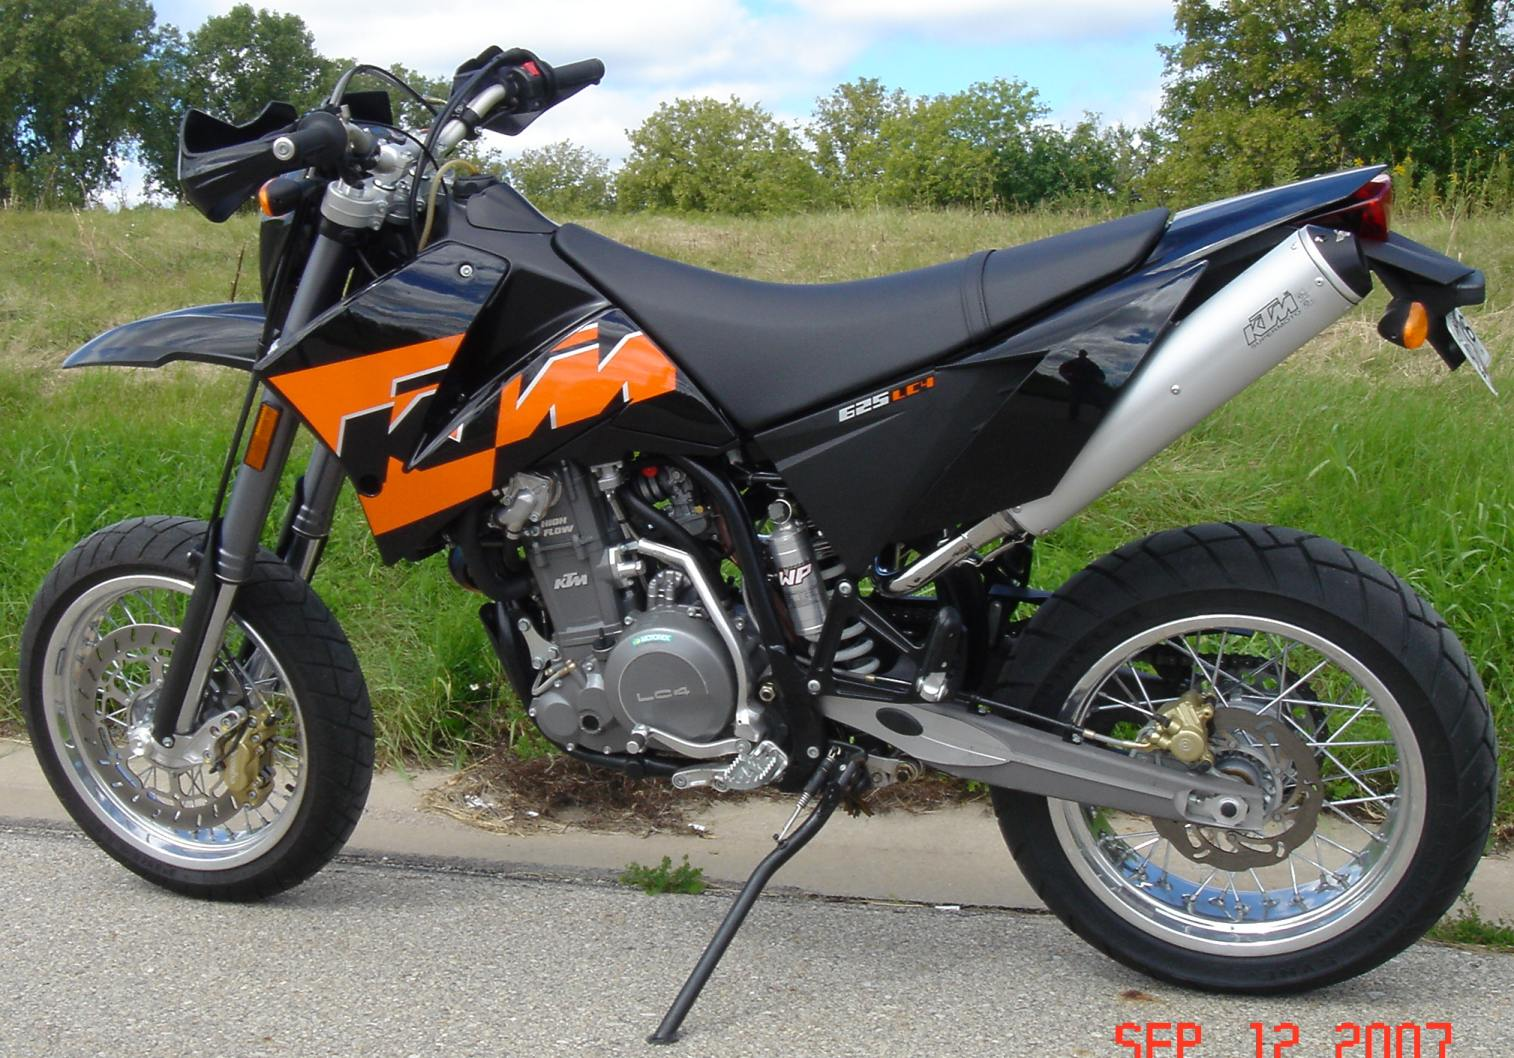 06 ktm 625 smc for sale - sportbikes